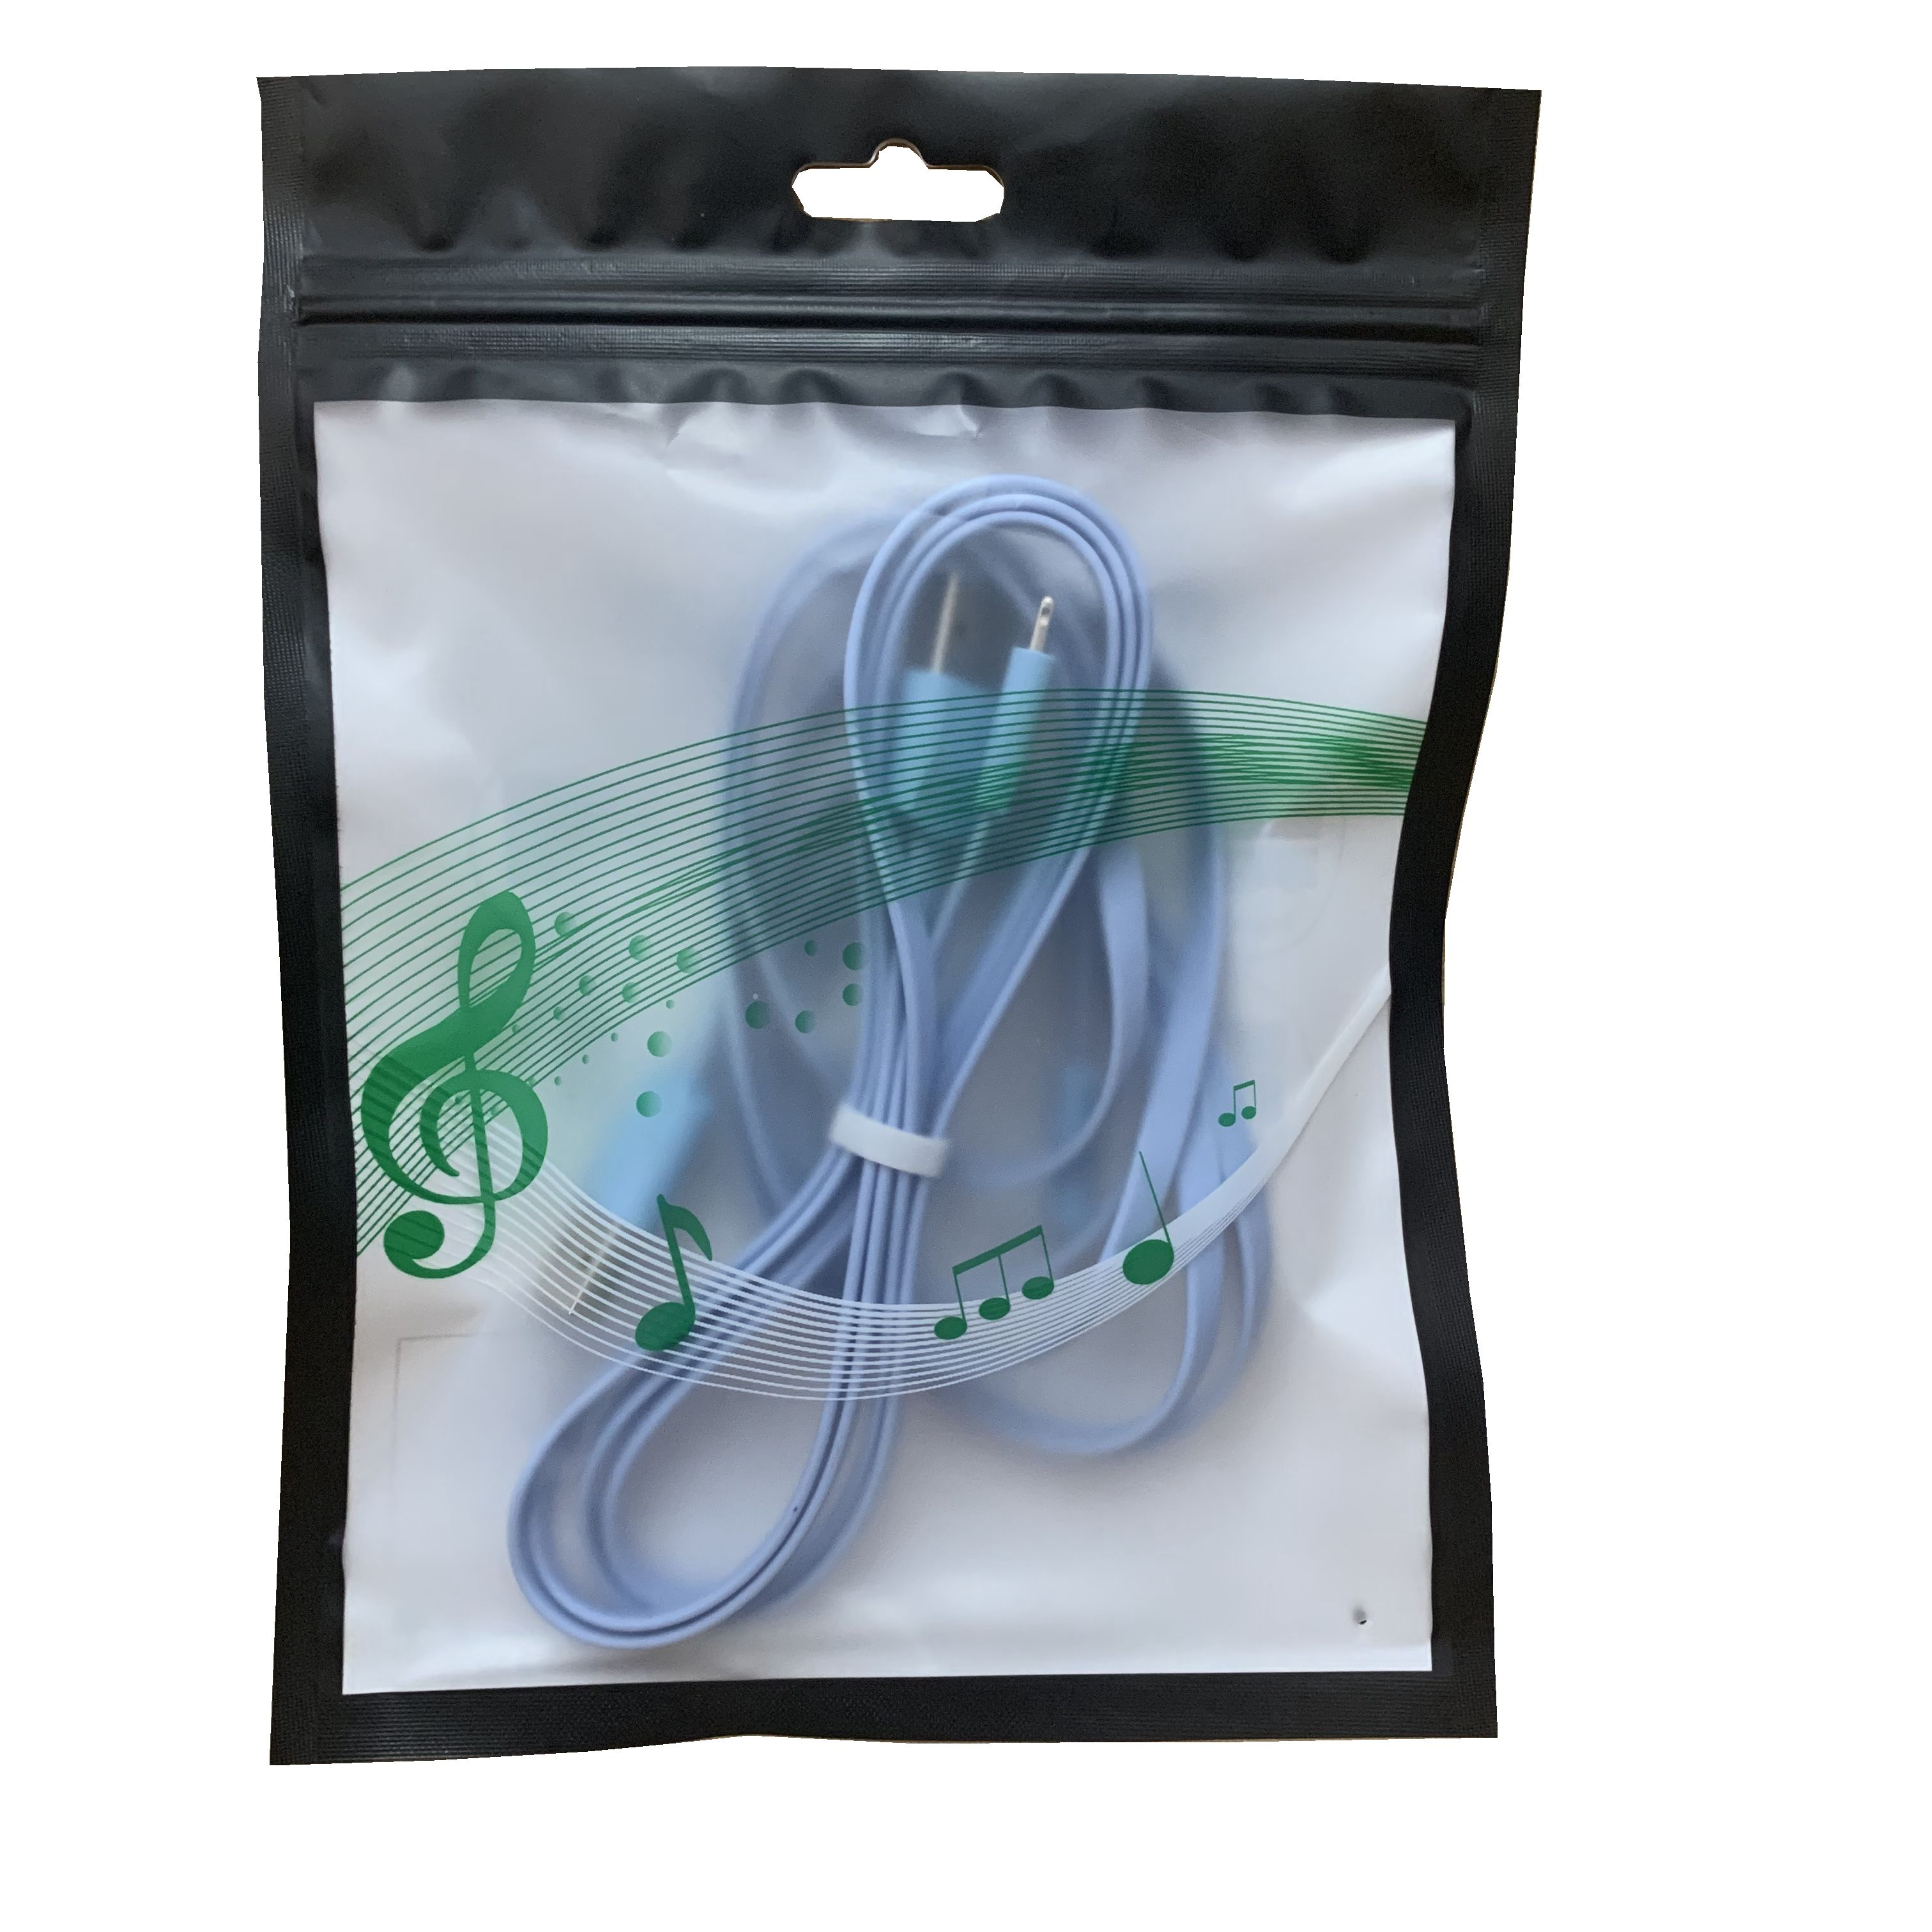 Free sample mylar plastic pearlized film clear zip lock reclosable USB bag mobile phone accessories packaging pouches